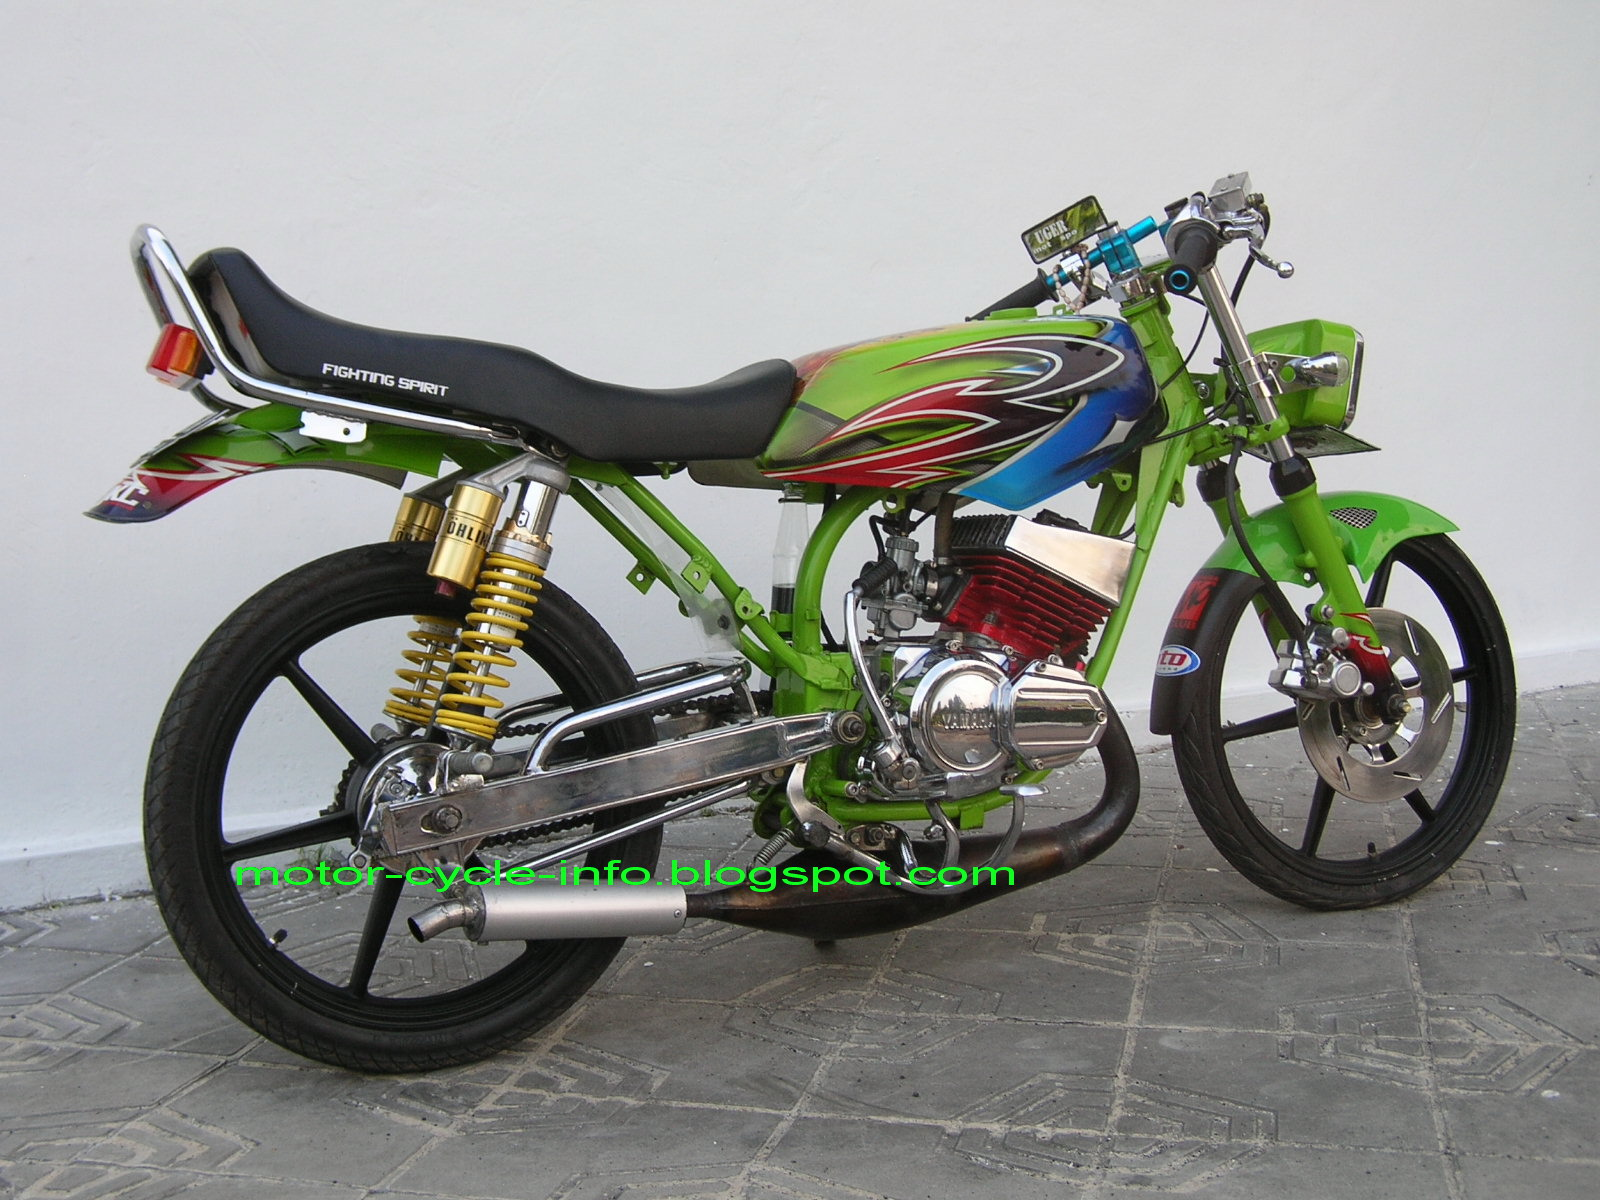 Download image Modifikasi Motor King Extreme Airbrush PC, Android ...